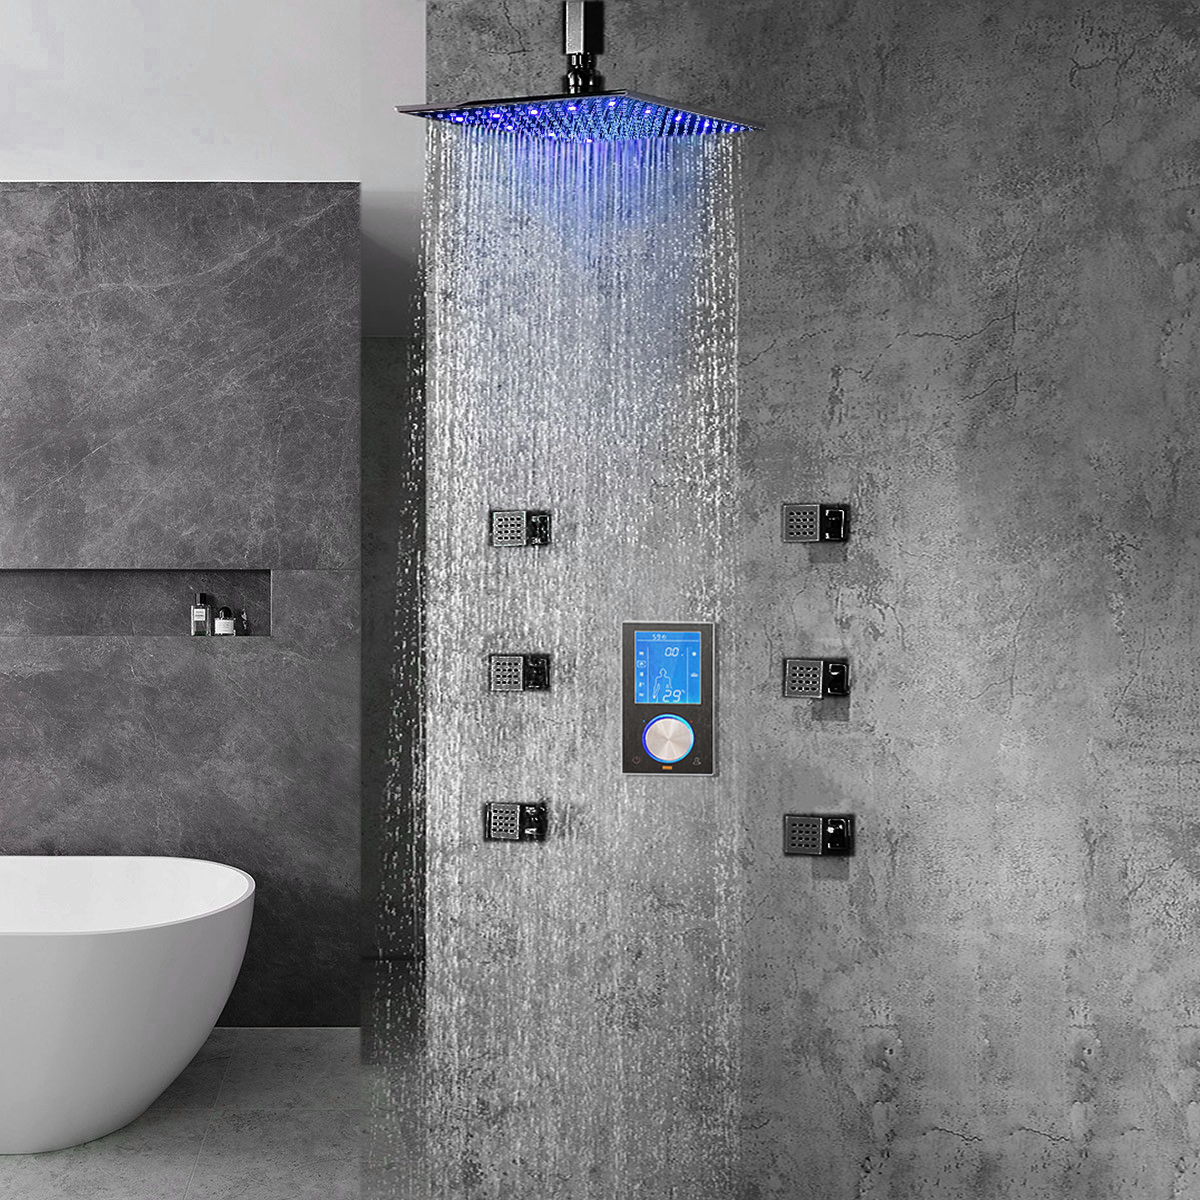 Milano Multi Color LED Rain Shower Head With Digital Mixer And 360° Adjustable Body Jets